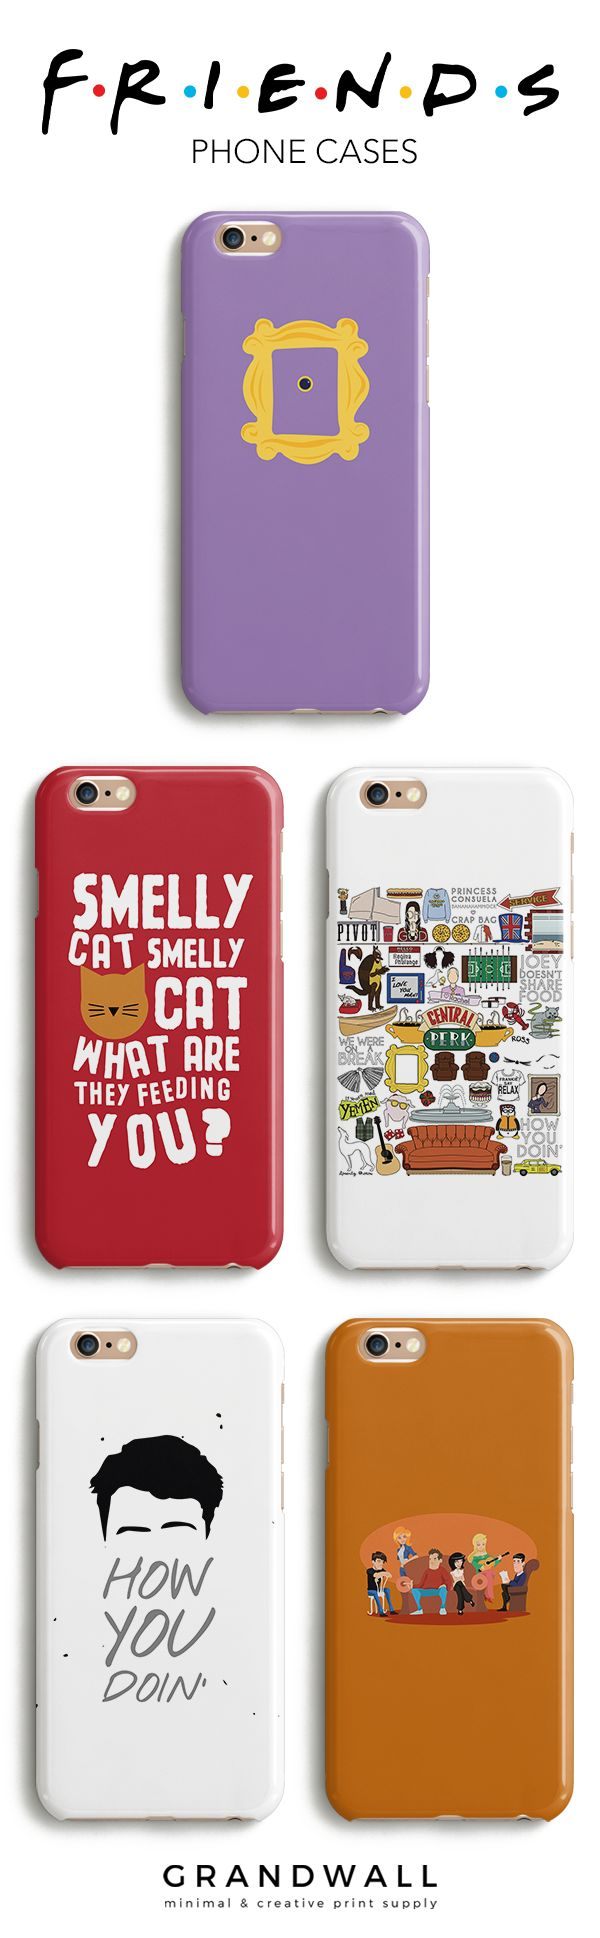 "Use Code ""PINTEREST"" for 10% off these Friends tv phone cases for the ultimate fans of the show available in all models for the iPhone as well as options for Samsung devices. Available here: http://grandwall.co/collections/friends-collection"